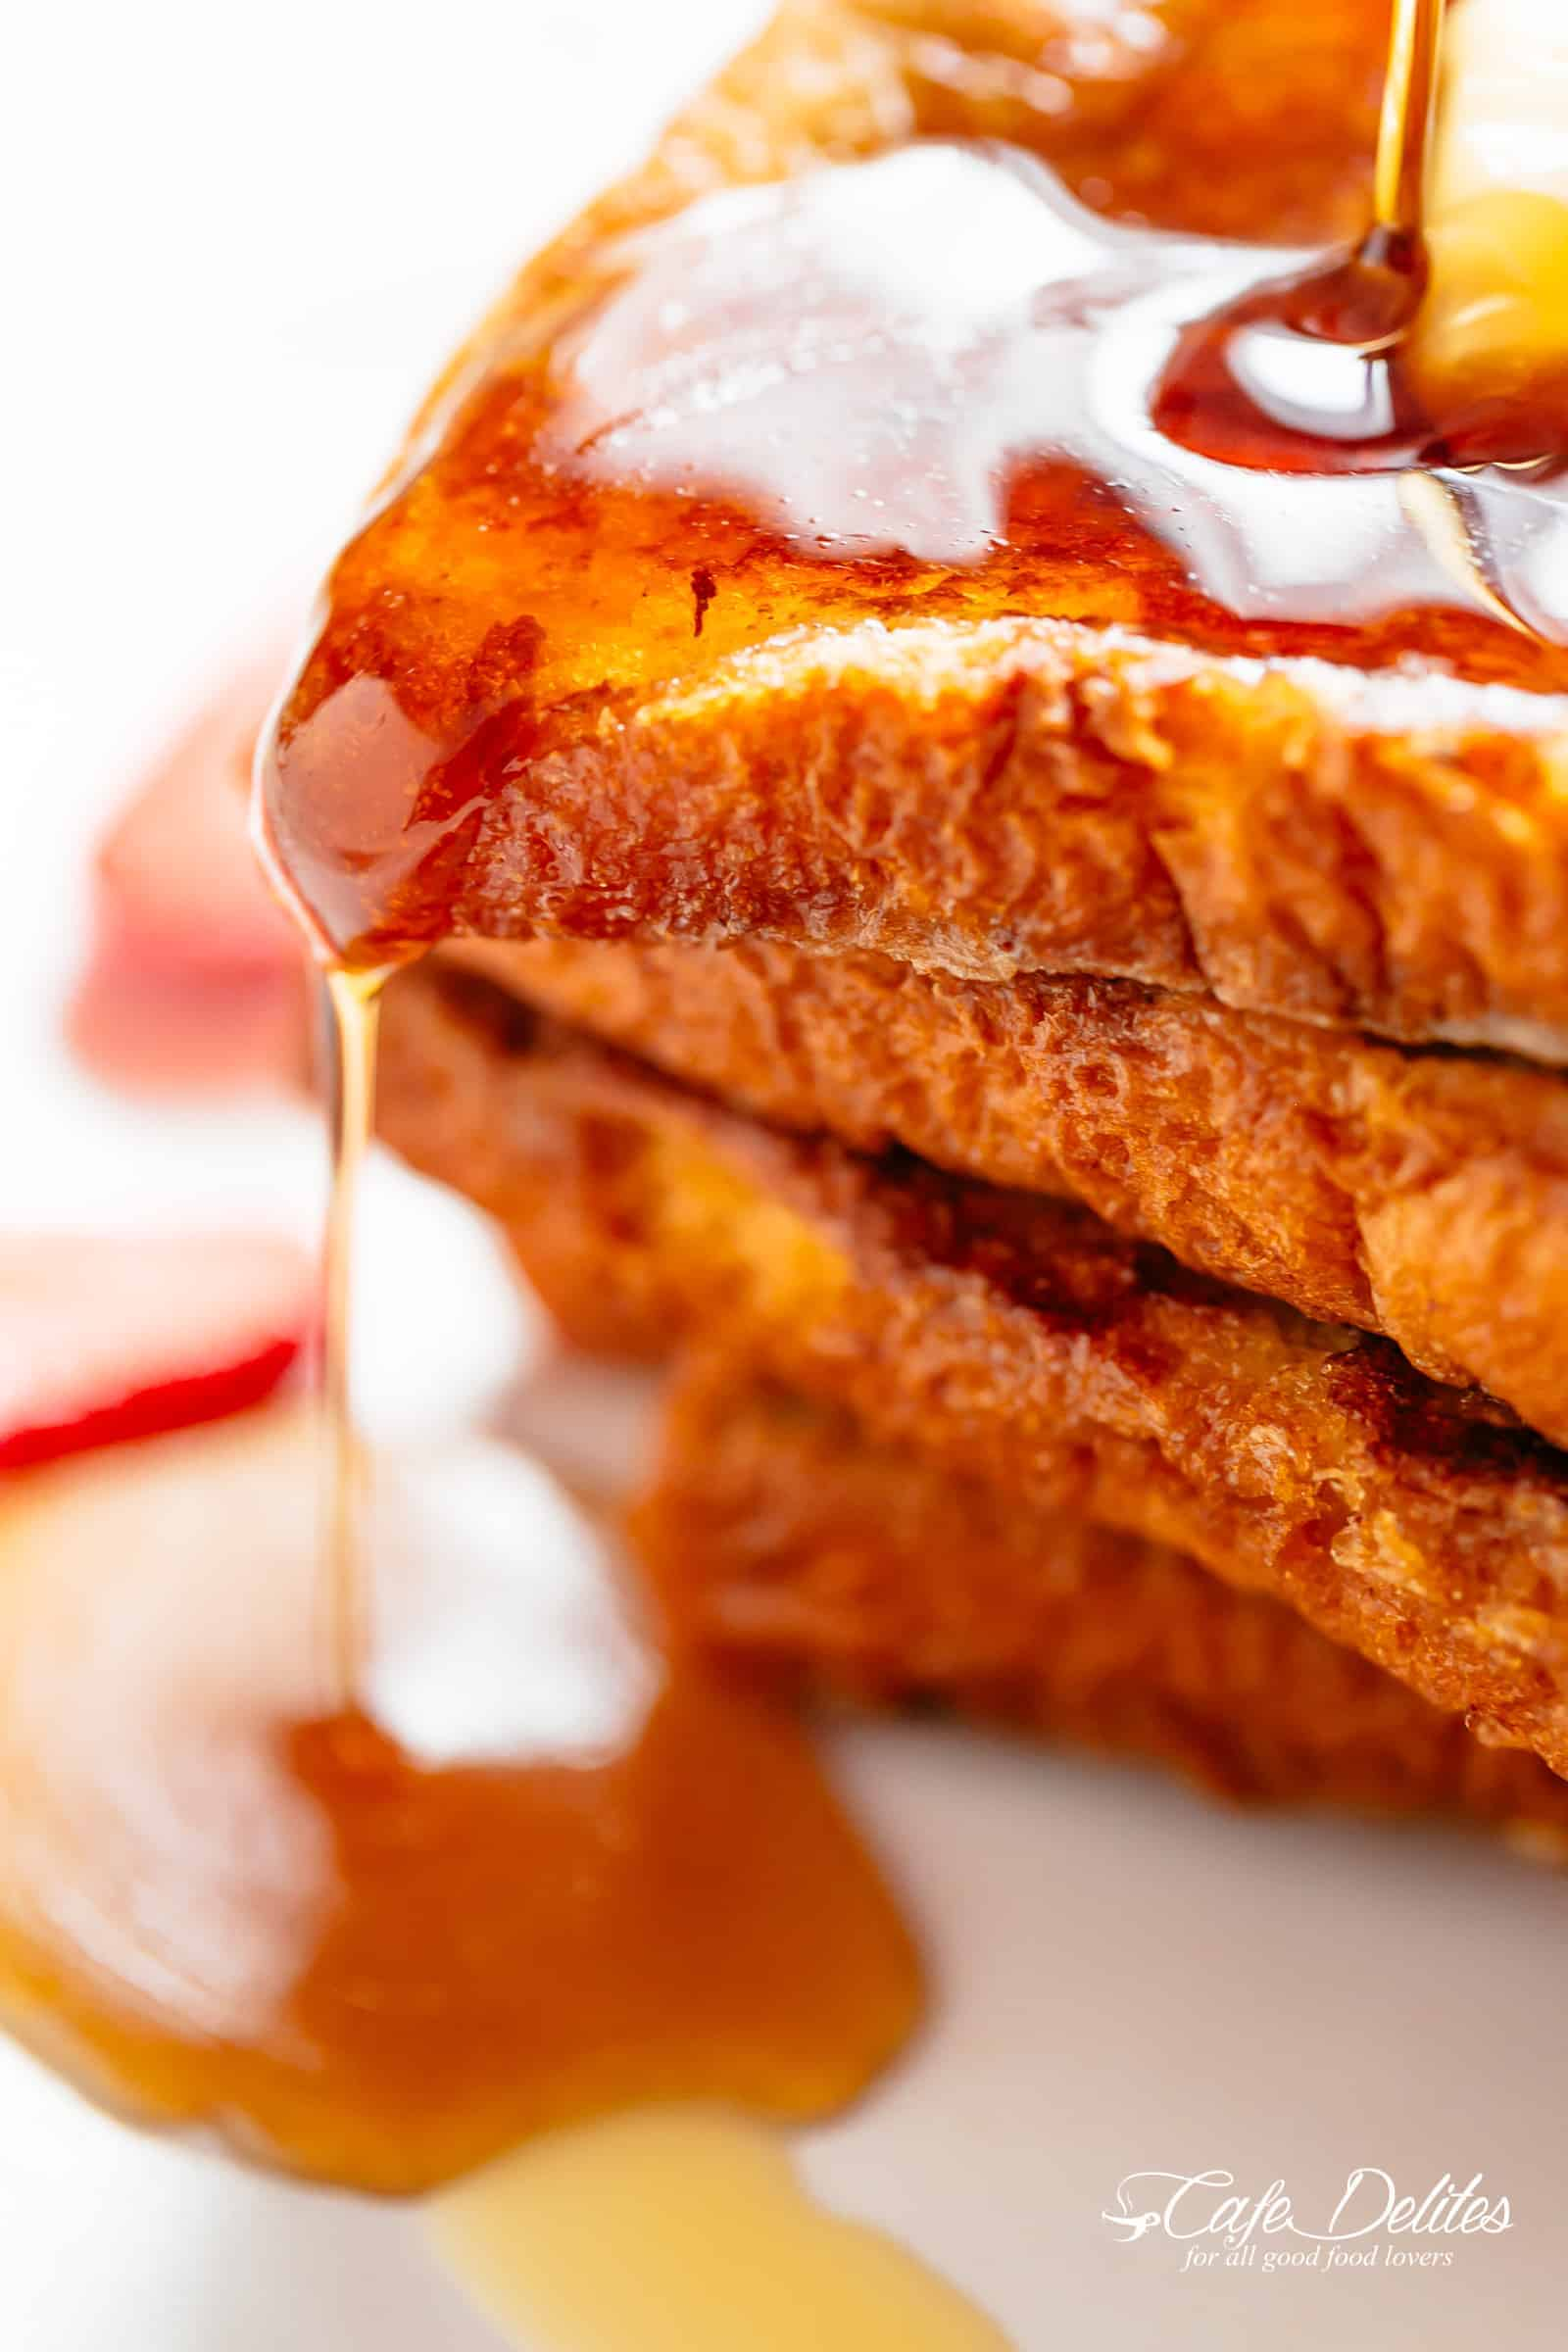 The Best French Toast is super easy to make with the perfect balance of flavours soaked into brioche slices! With a hint of vanilla and cinnamon, a touch of sweetness, and crispy pan fried edges, this is one French Toast recipe the whole family goes crazy for | cafedelites.com